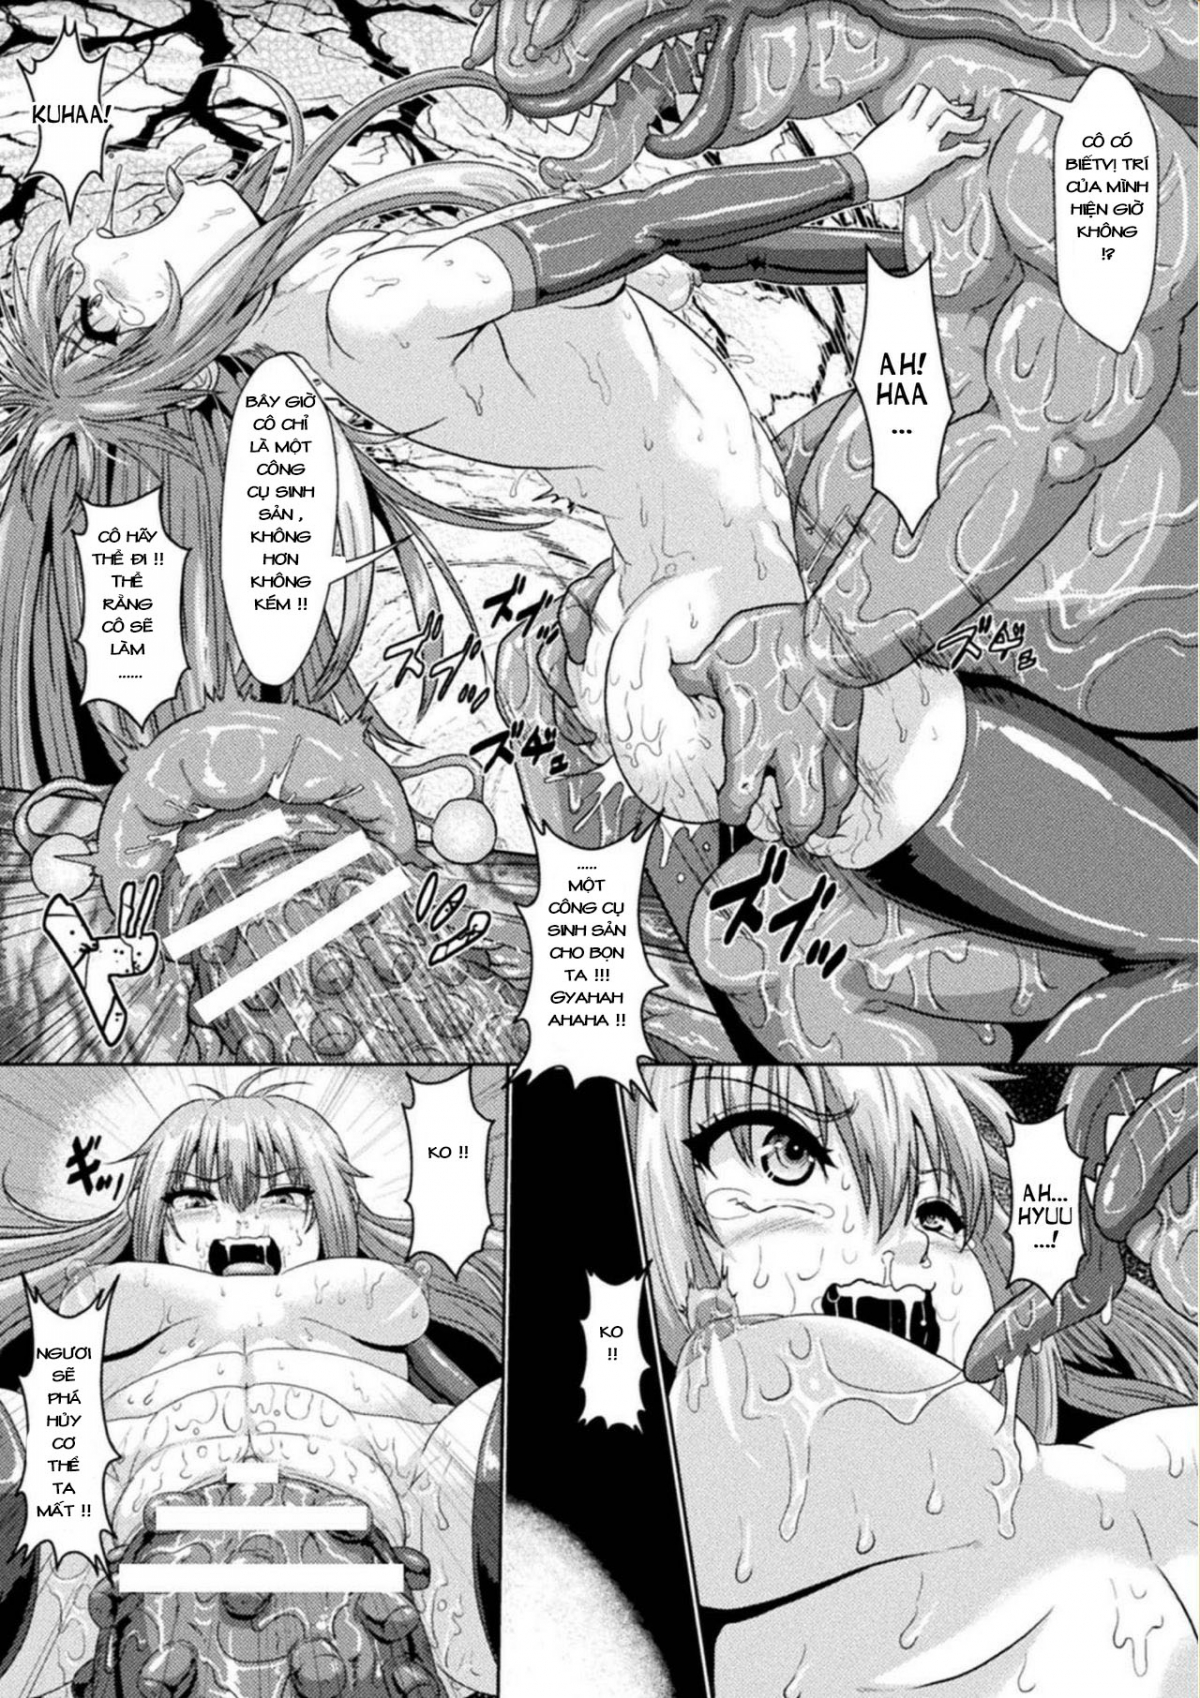 HentaiVN.net - Ảnh 19 - Fallen Witch ~The Reproduction Hole Used For Breeding Slugs~ - Oneshot